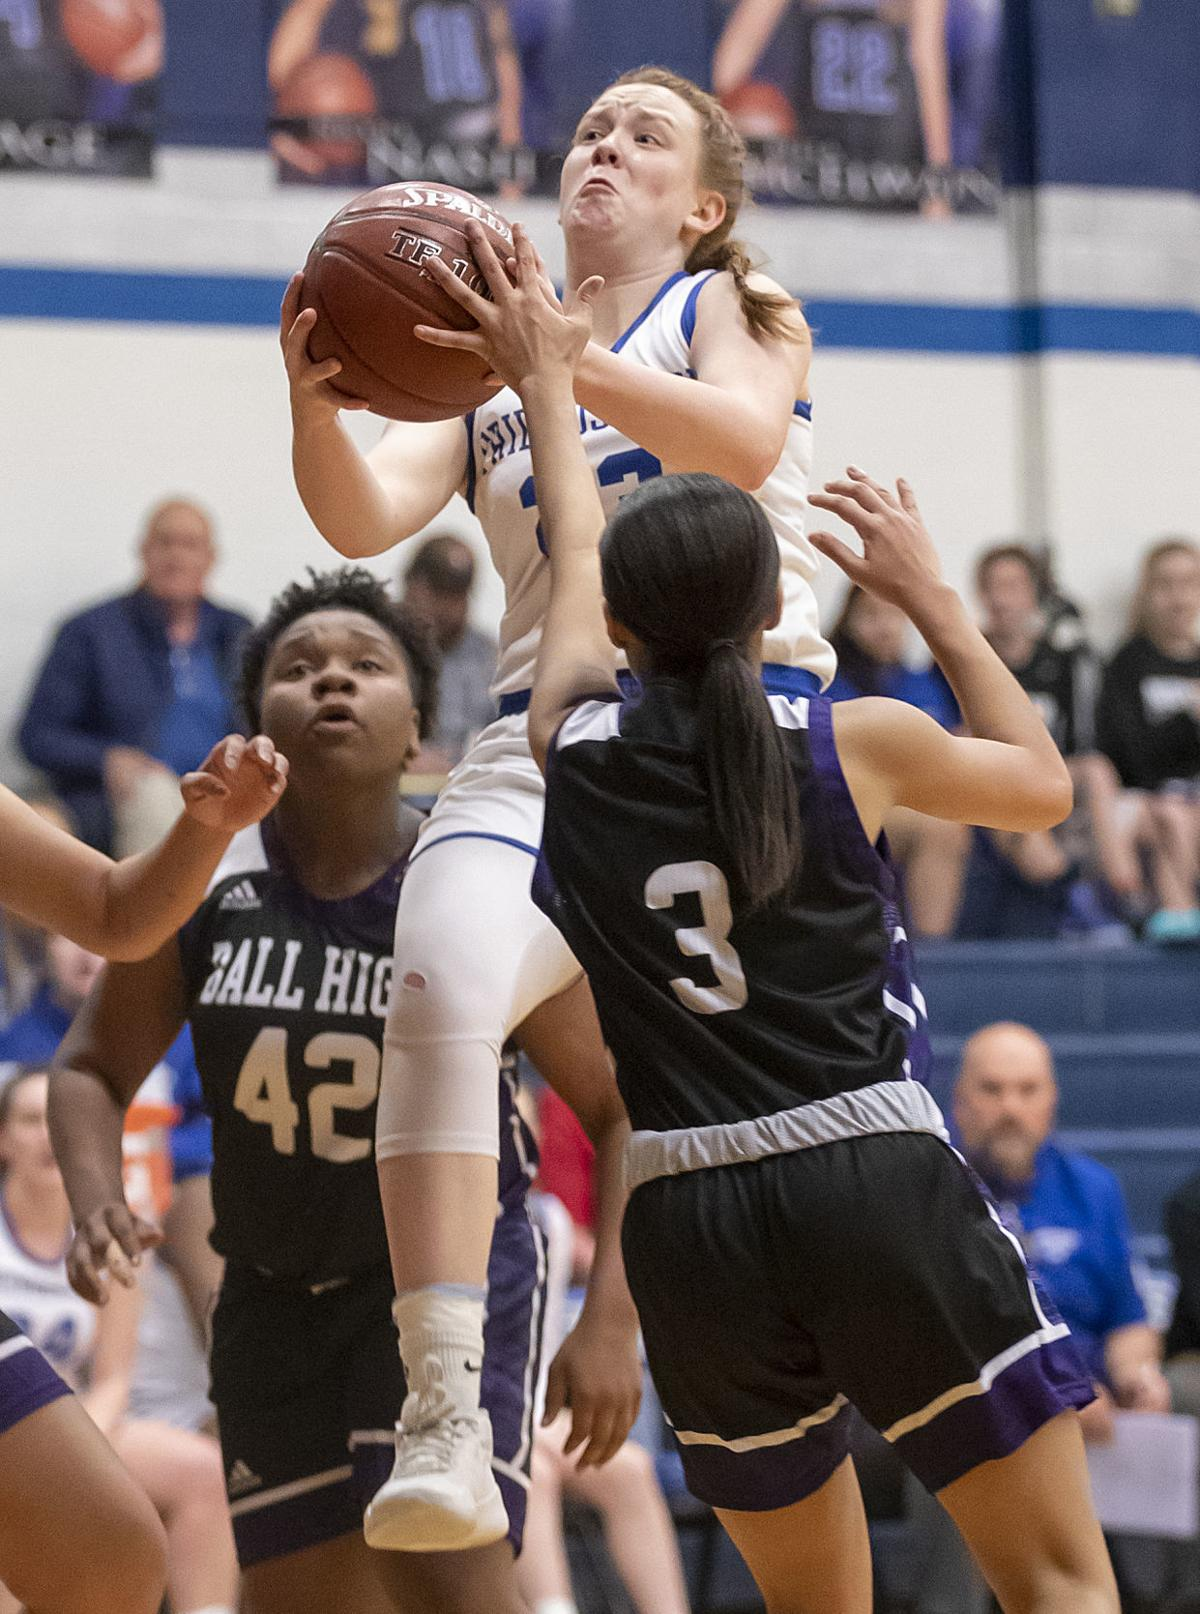 Friendswood vs Ball High Girls Basketball